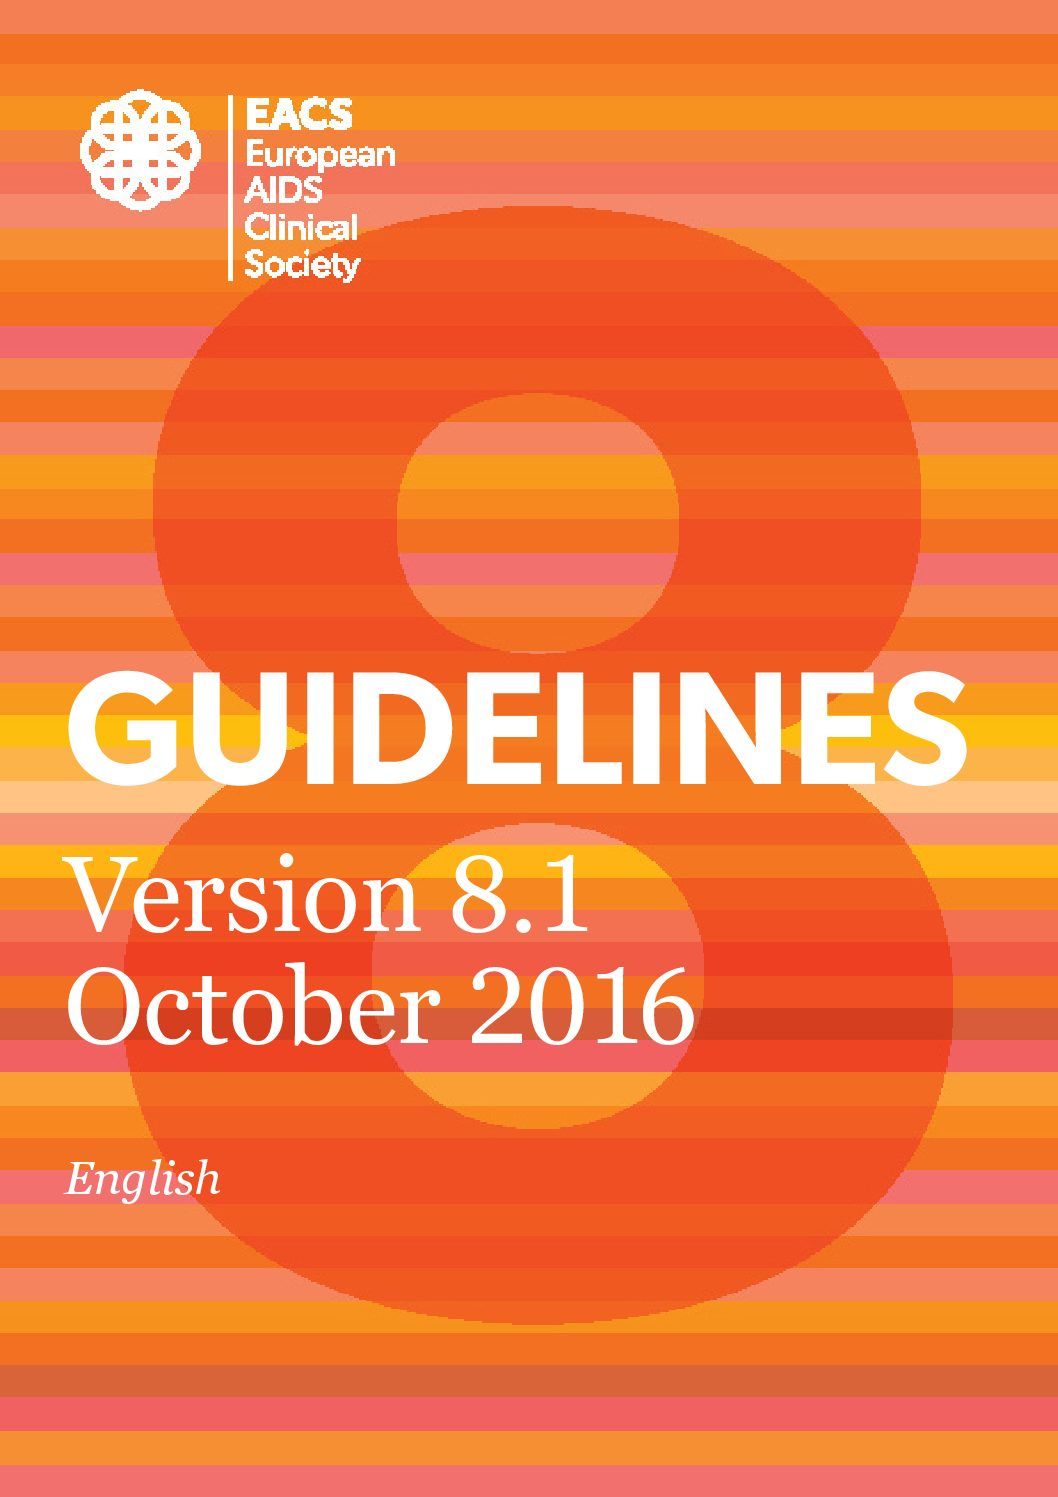 Eacs guidelines version 8.1 October 2016